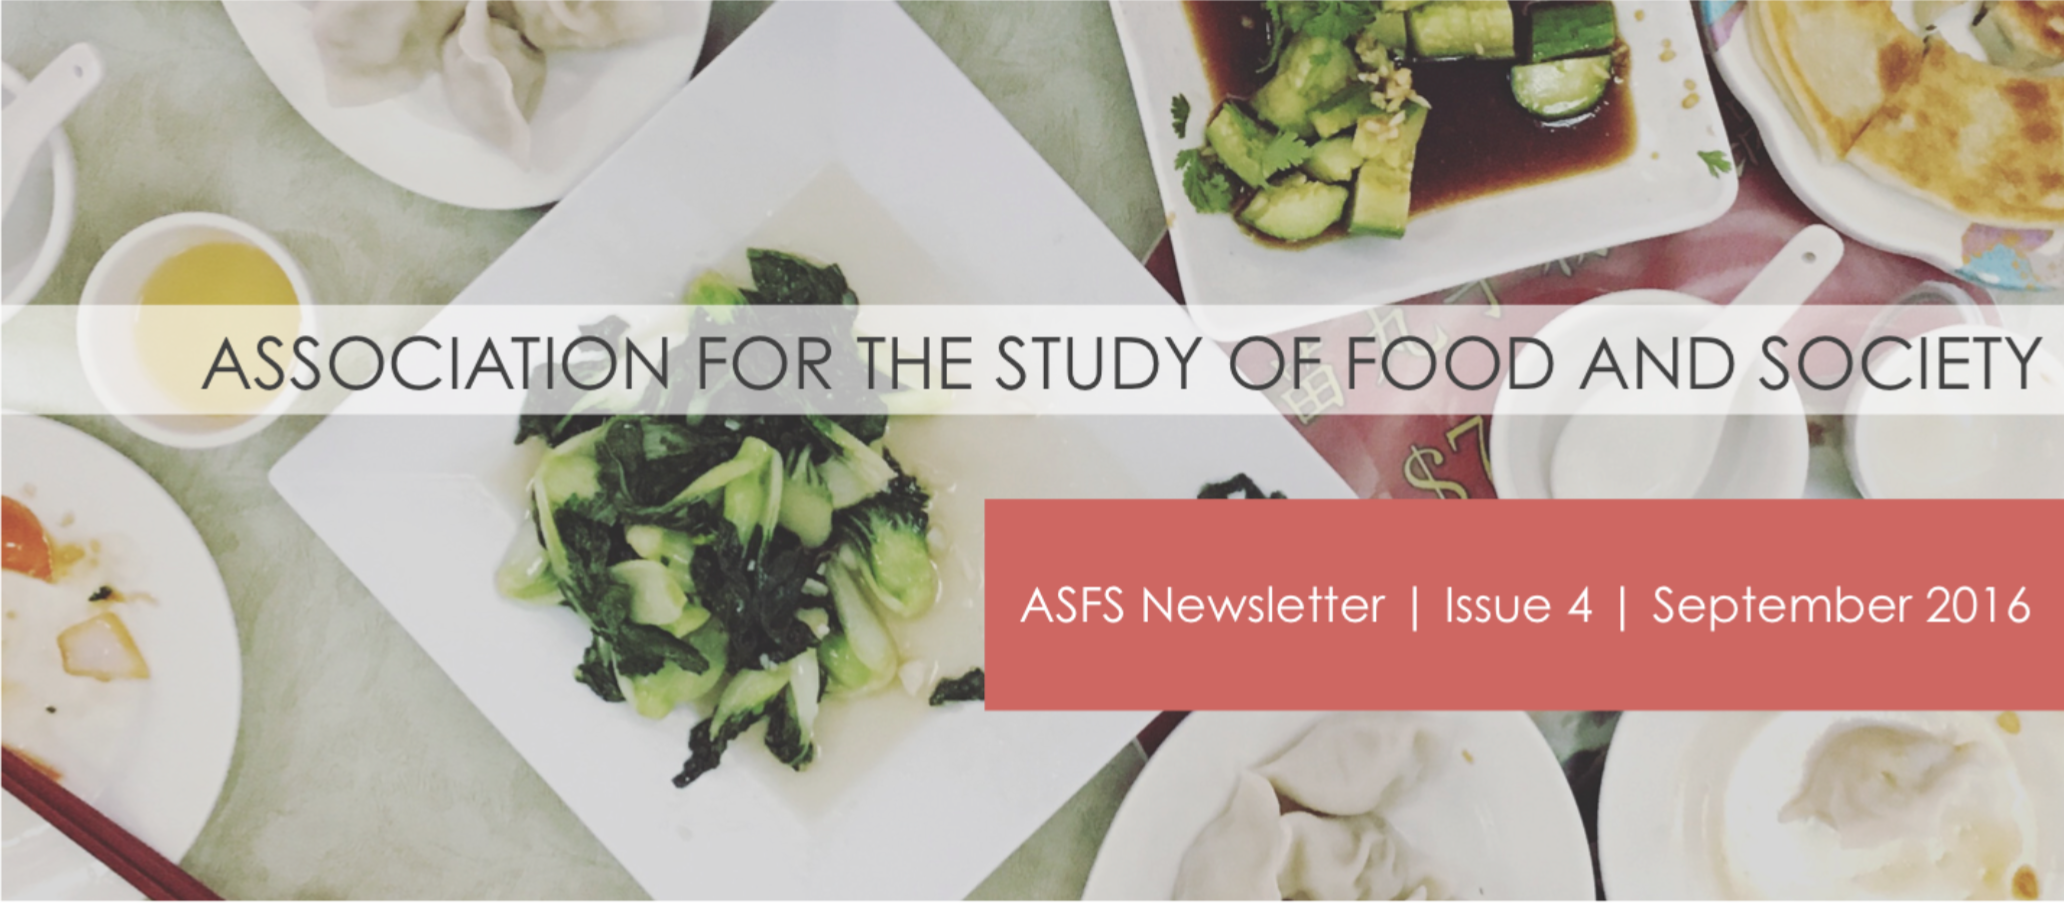 OWU Food Minor & Association for the Study of Food & Society